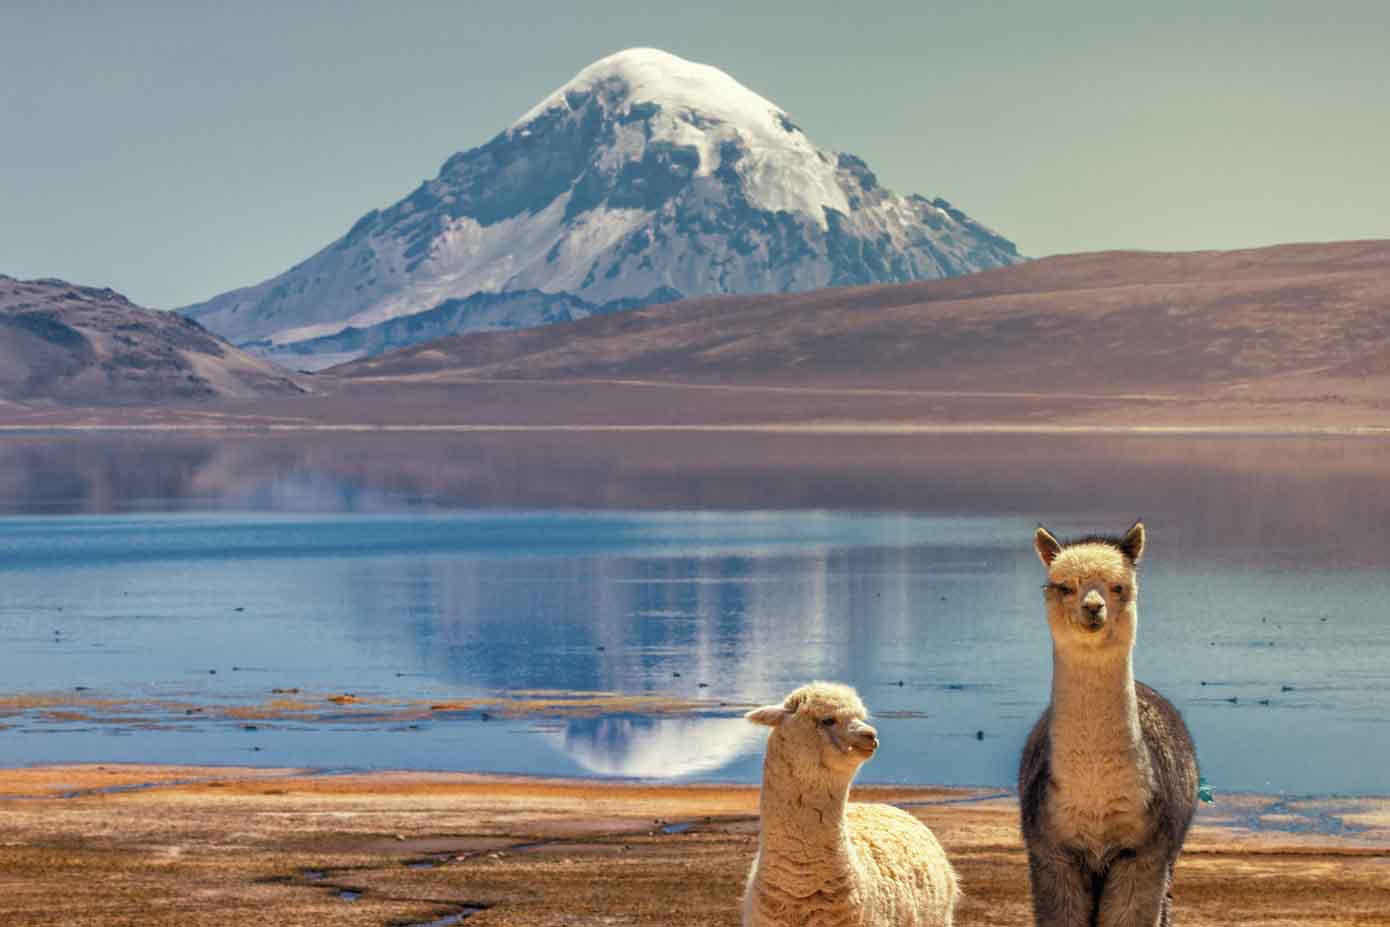 Alpacas on the shore of a lake at the base of a volcano.